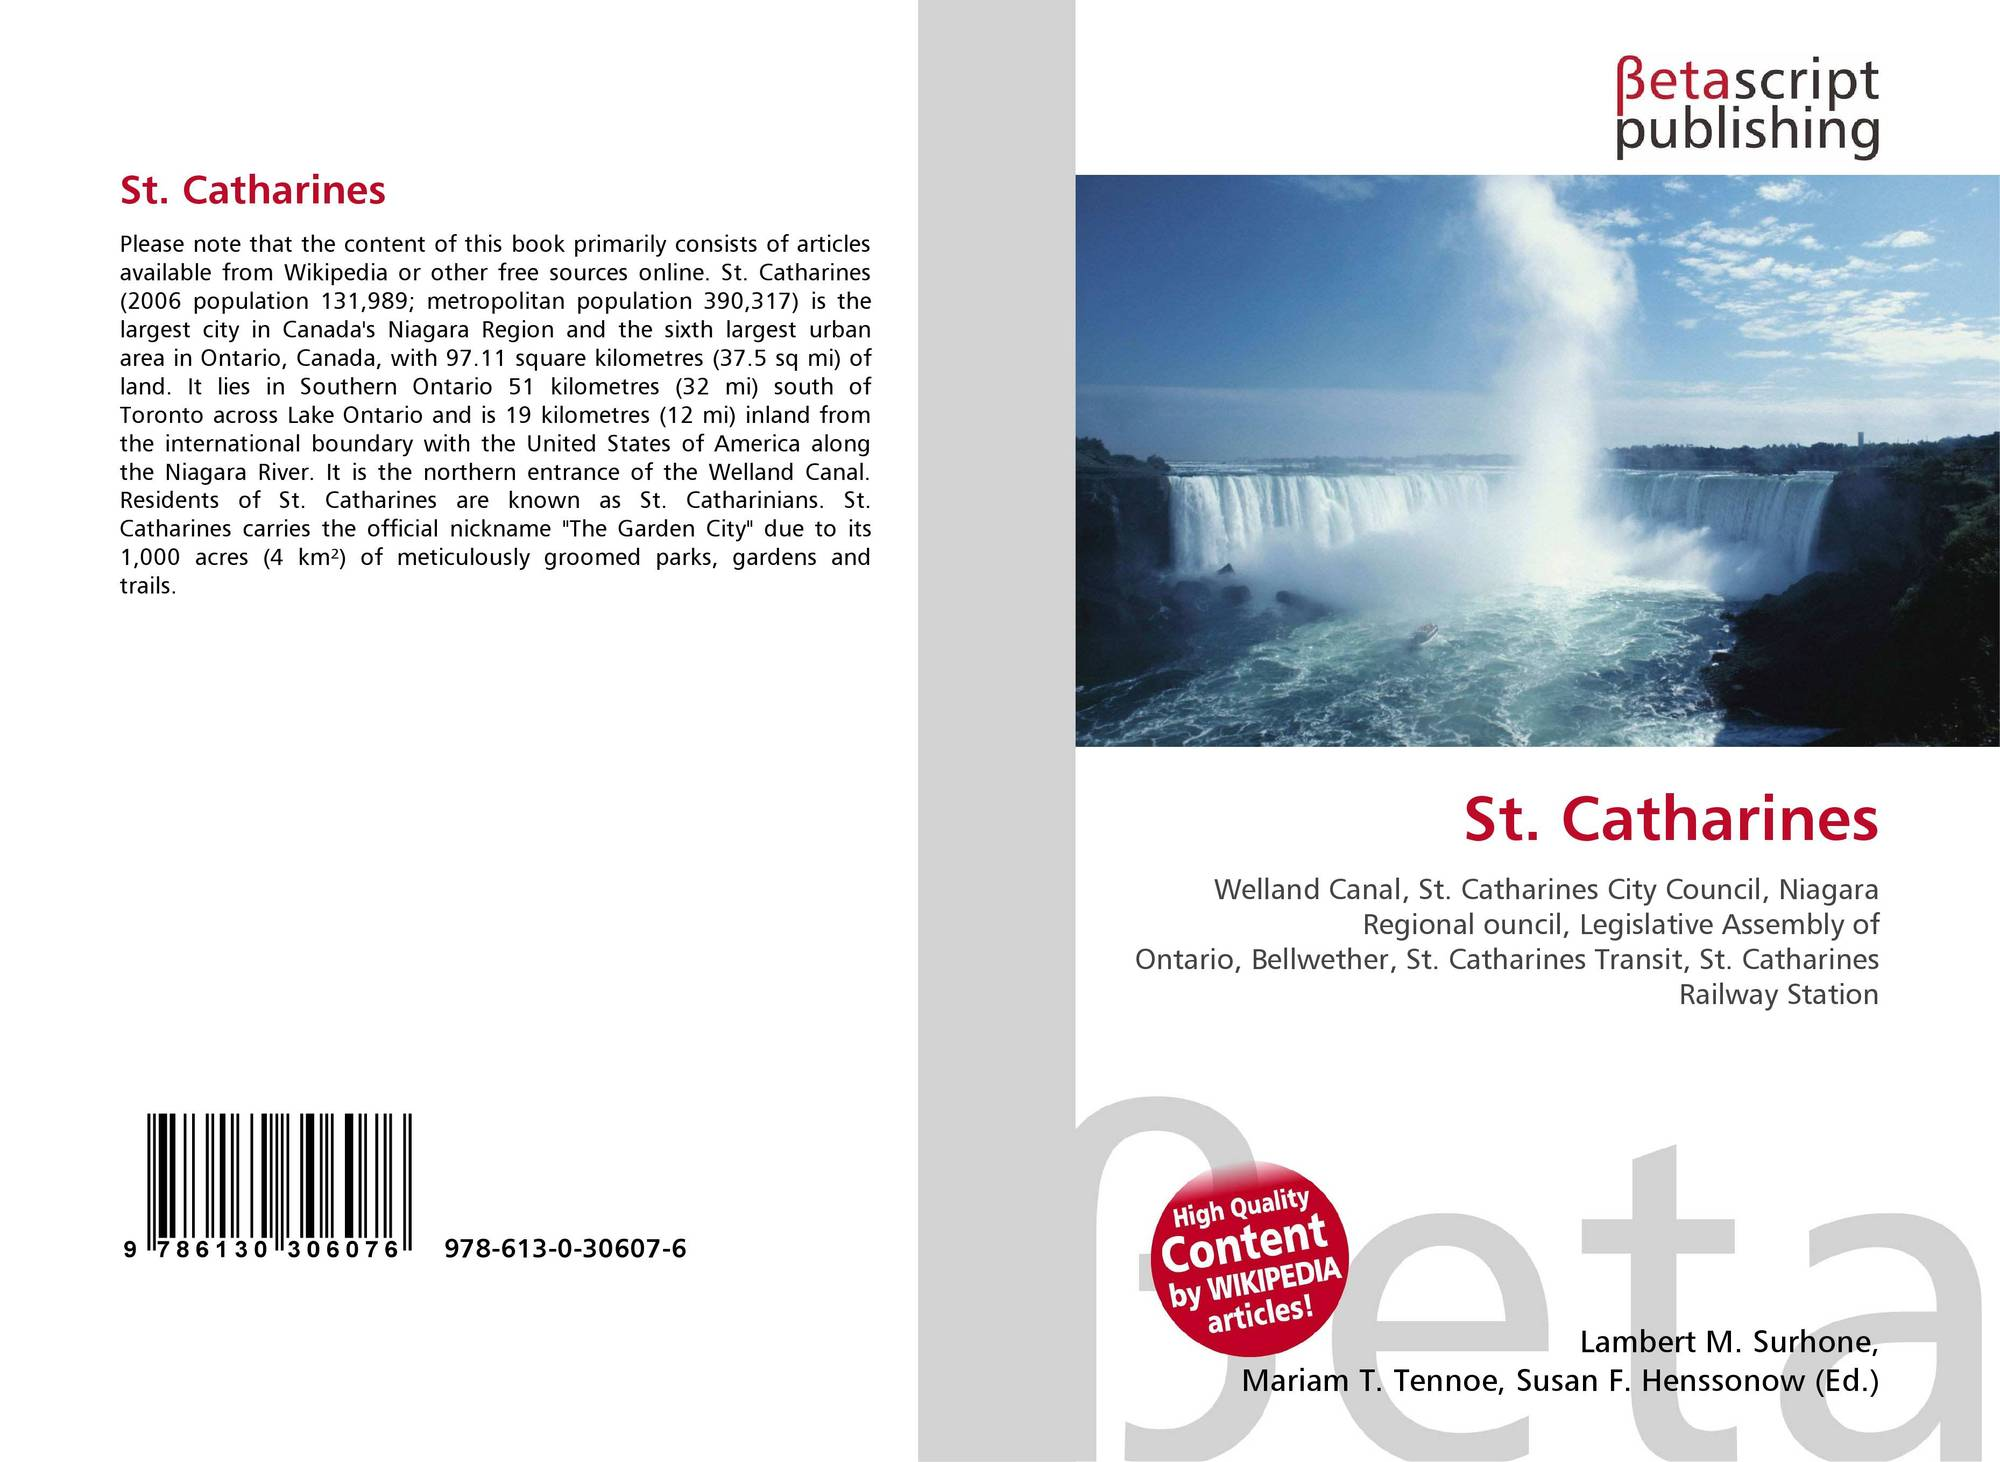 an essay on st catharines standard Robert w dimand of brock university, st catharines with expertise in economic history, game theory, macroeconomics read 186 publications, and contact robert w dimand on researchgate, the.